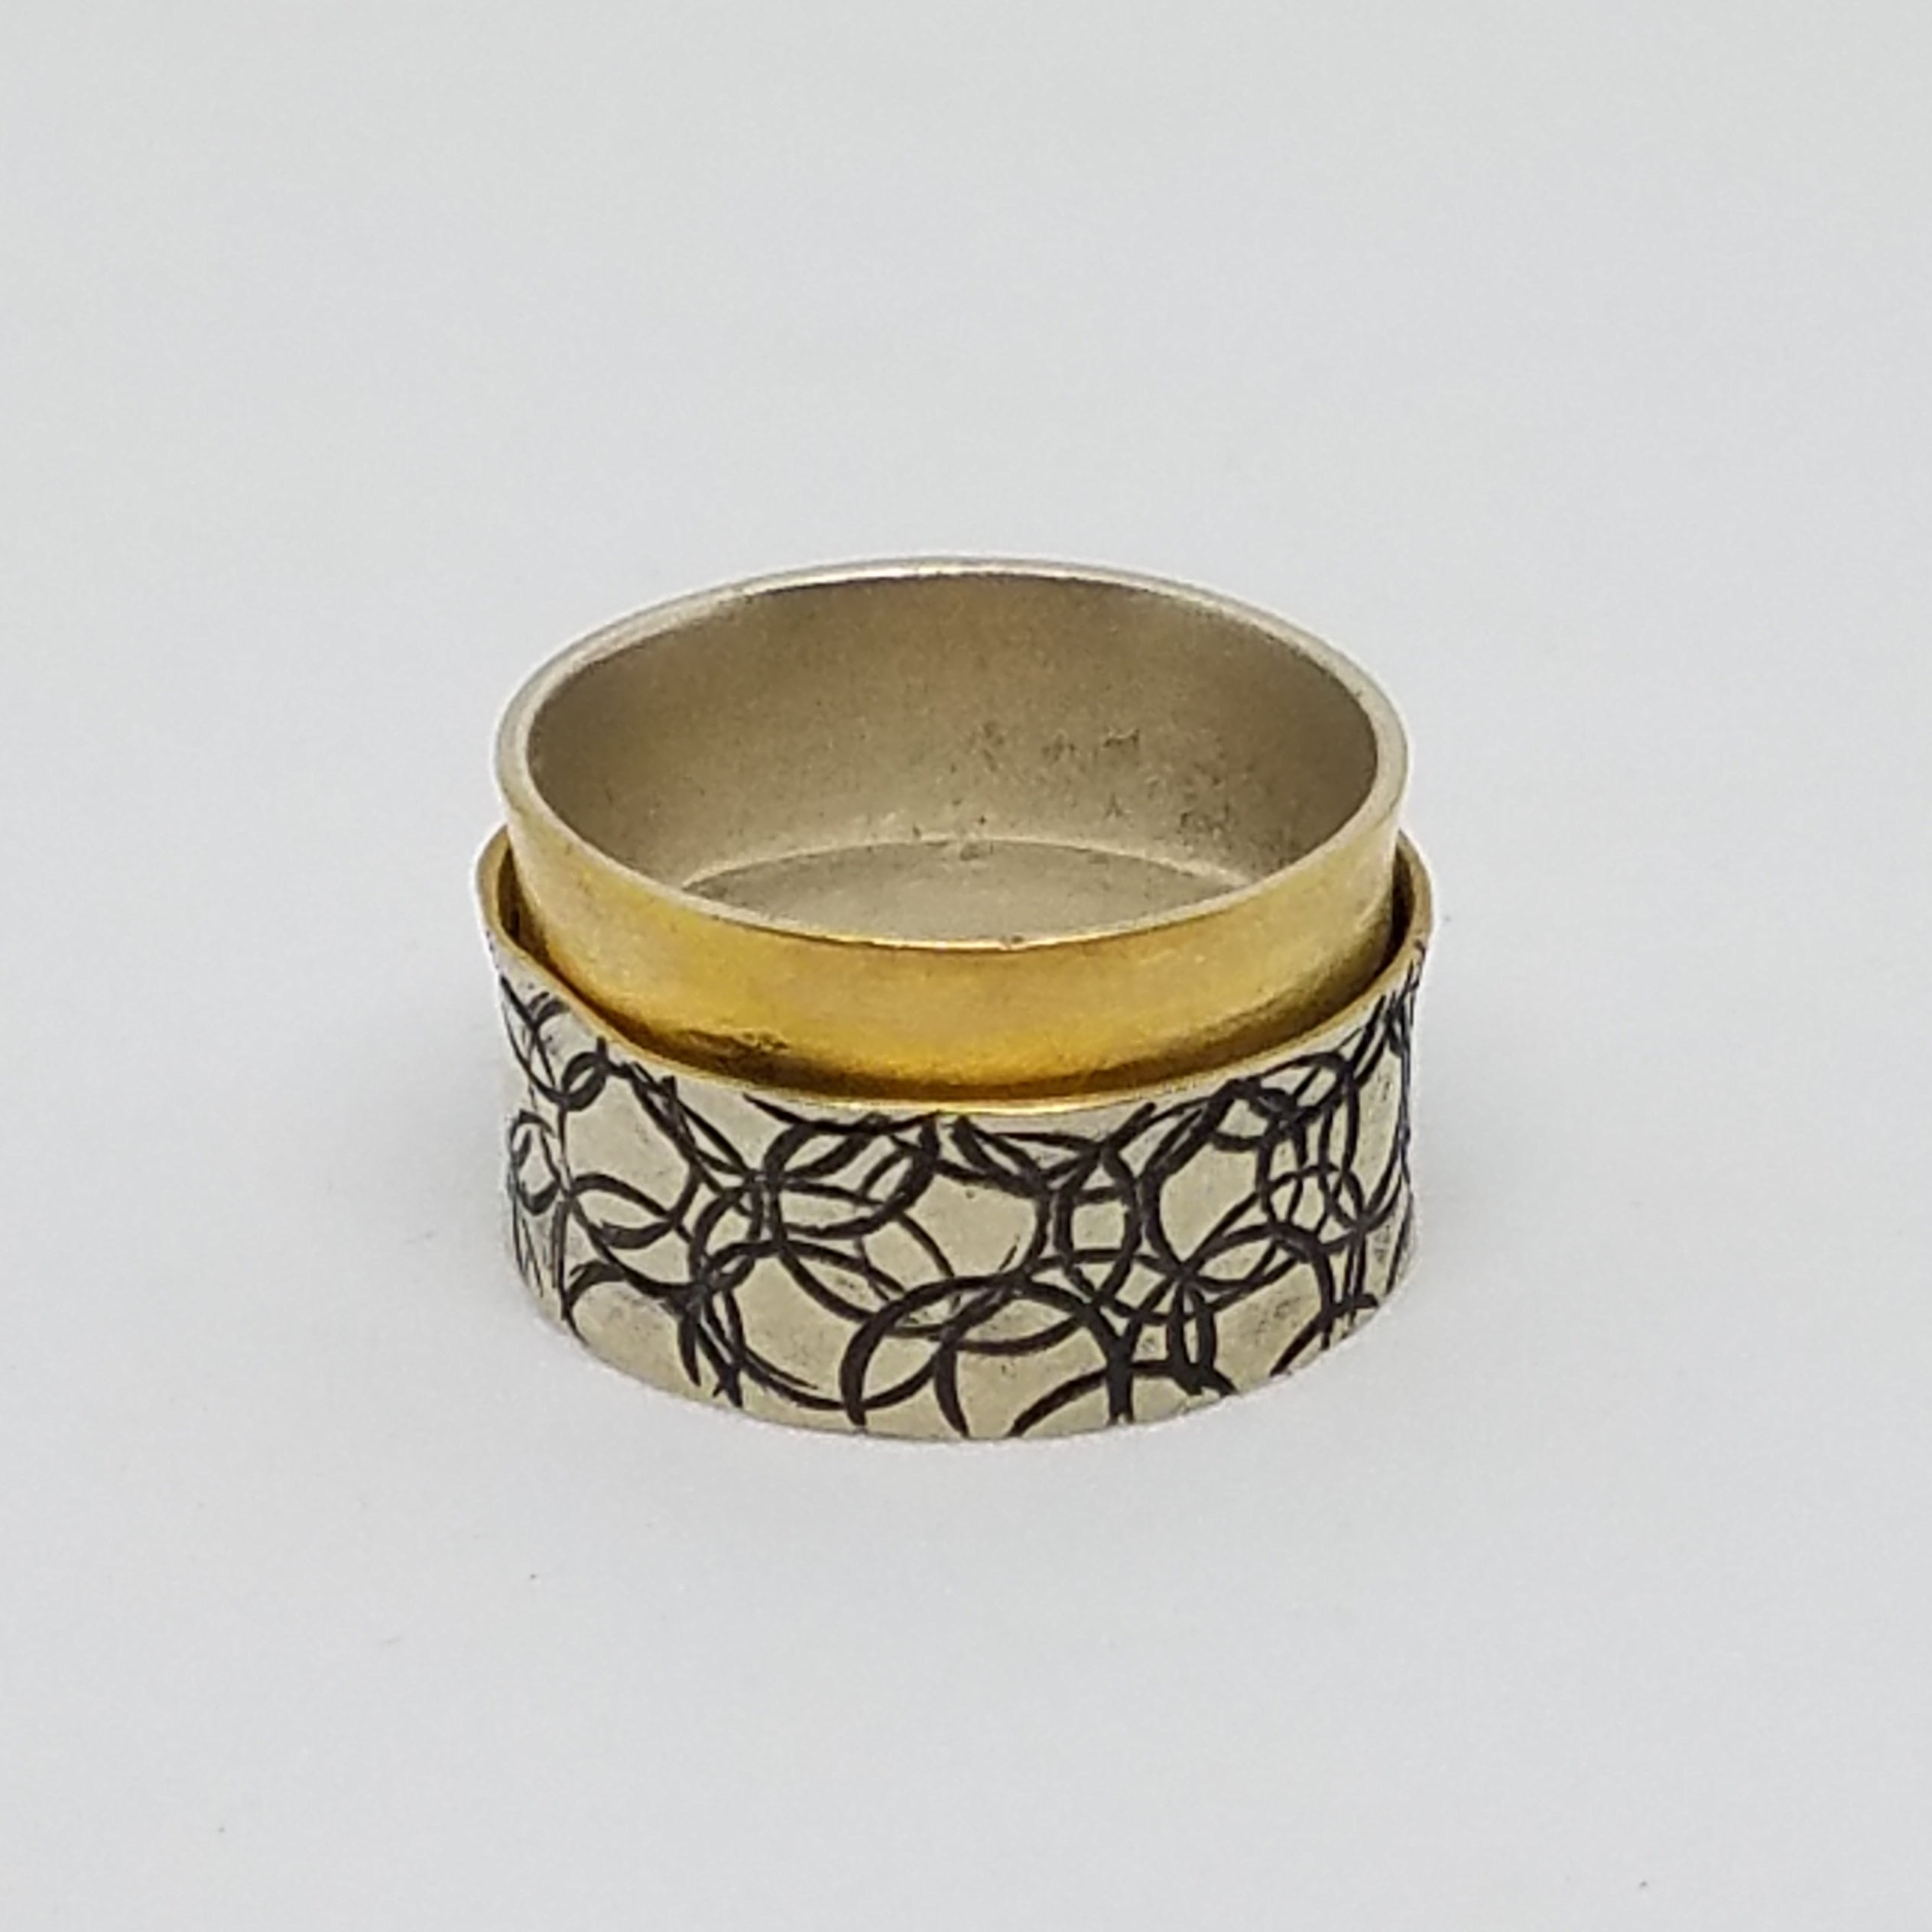 Two Tone Sleeve Ring